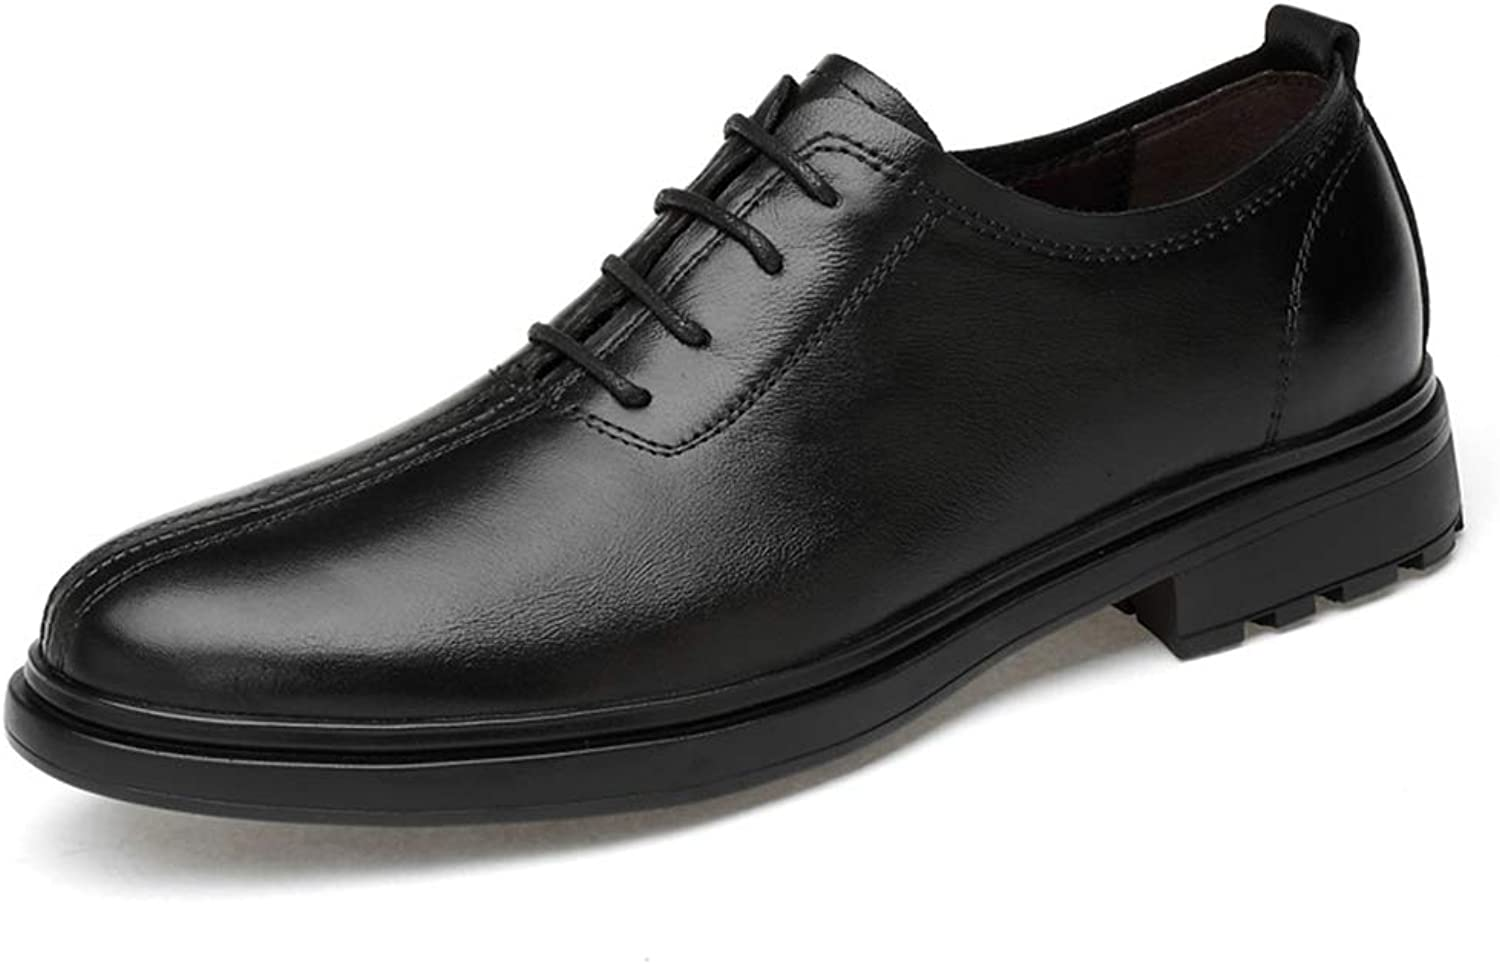 Hy-w Men's shoes, Low-top Casual Slip On shoes,British Business Breathable Leather shoes, New Spring fall Men Trend Leather shoes (color   Black, Size   46)